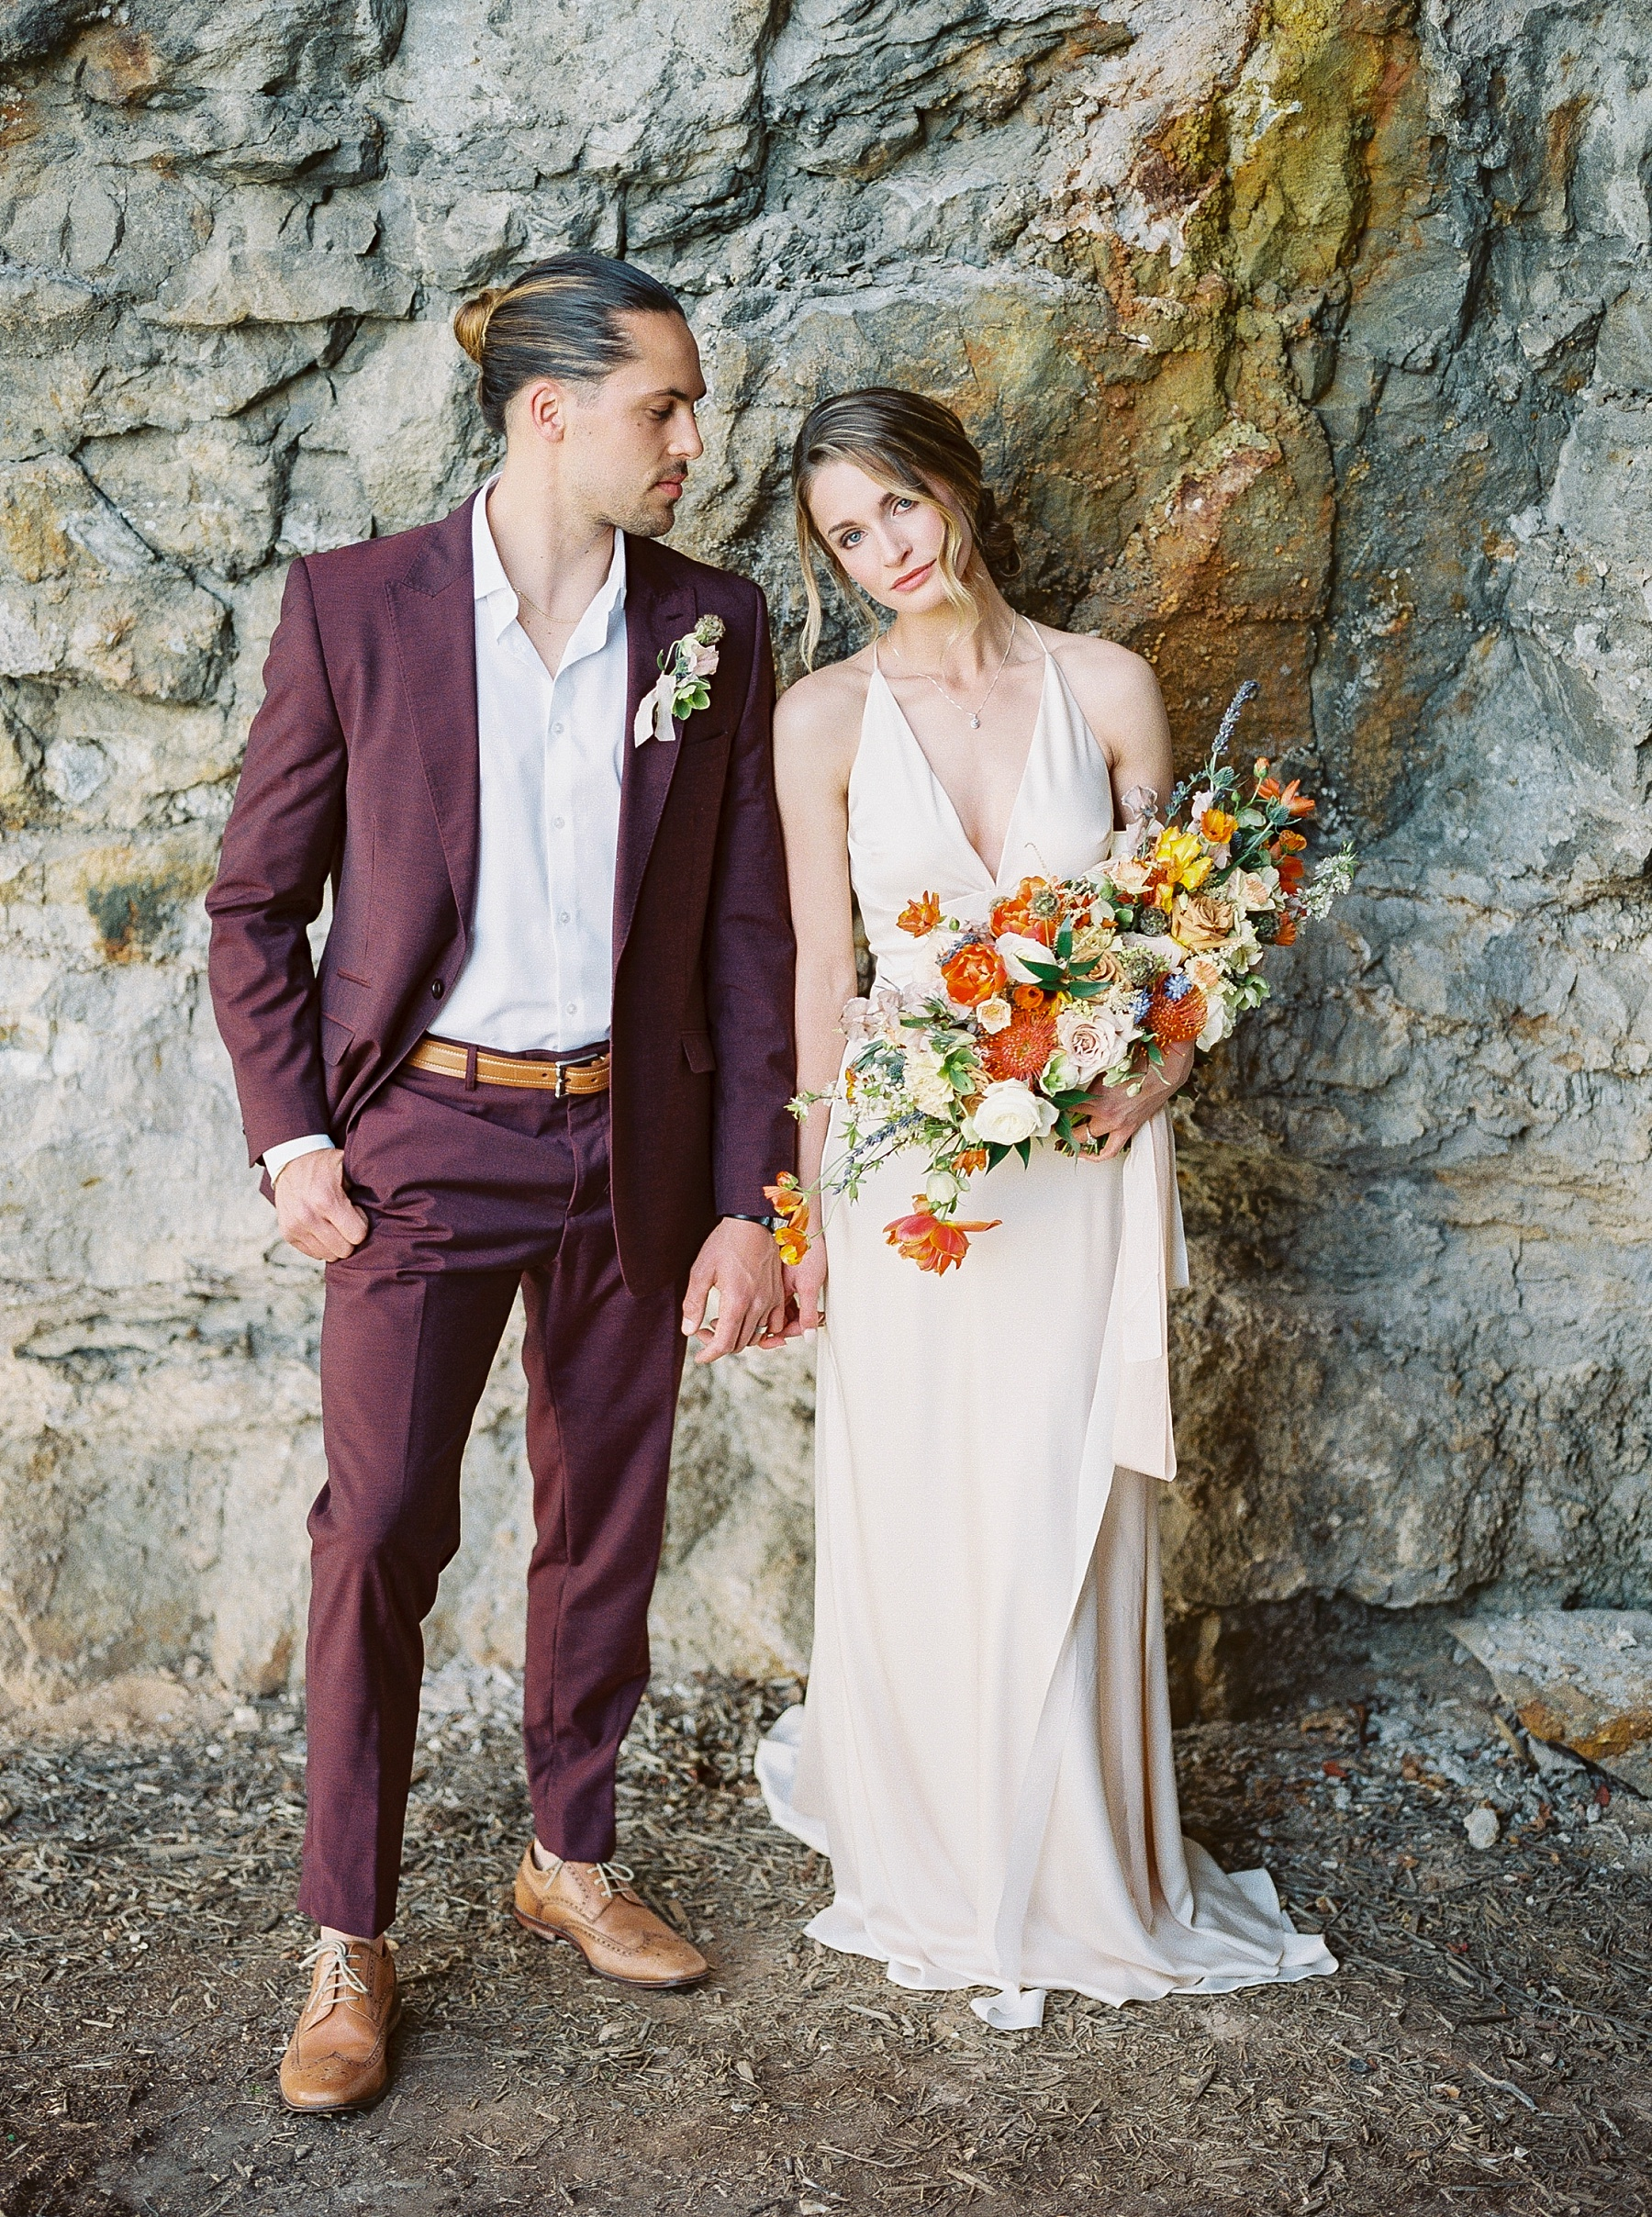 Intimate Spanish and French Inspired Destination Wedding with Lakeside Dinner Party at Dusk at Wildcliff by Kelsi Kliethermes Photography Best Missouri and Maui Wedding Photographer_0056.jpg